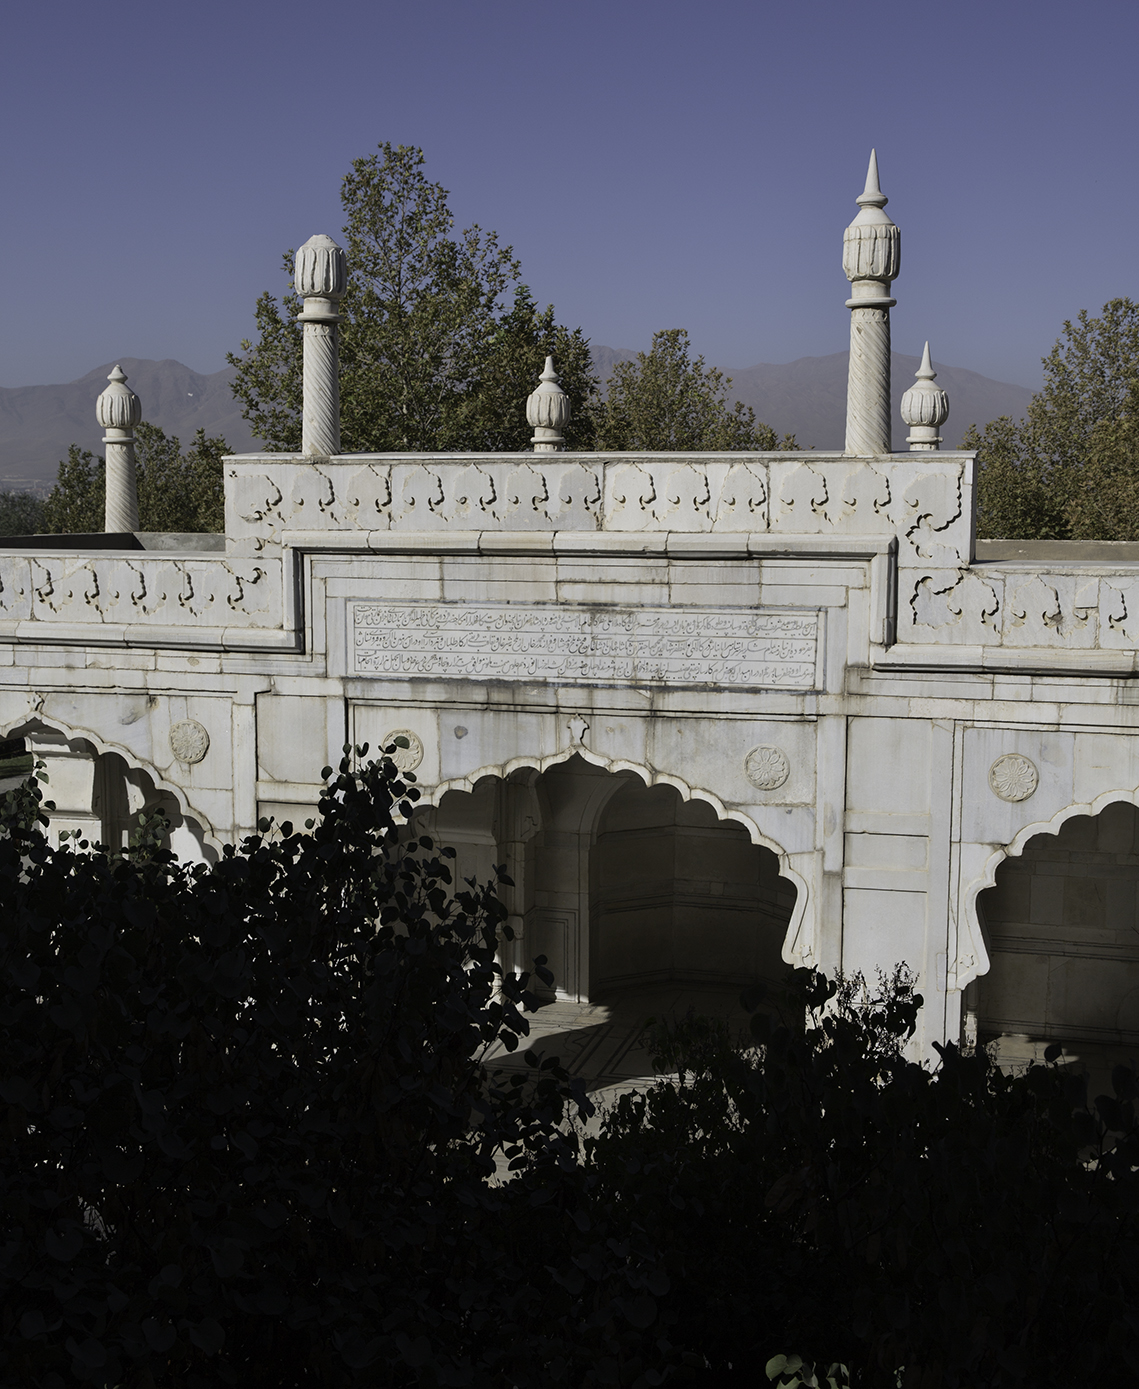 The front view in Bagh-e Babur of a small white marble mosque built in 1647 by Mughal ruler Shah Jahan.